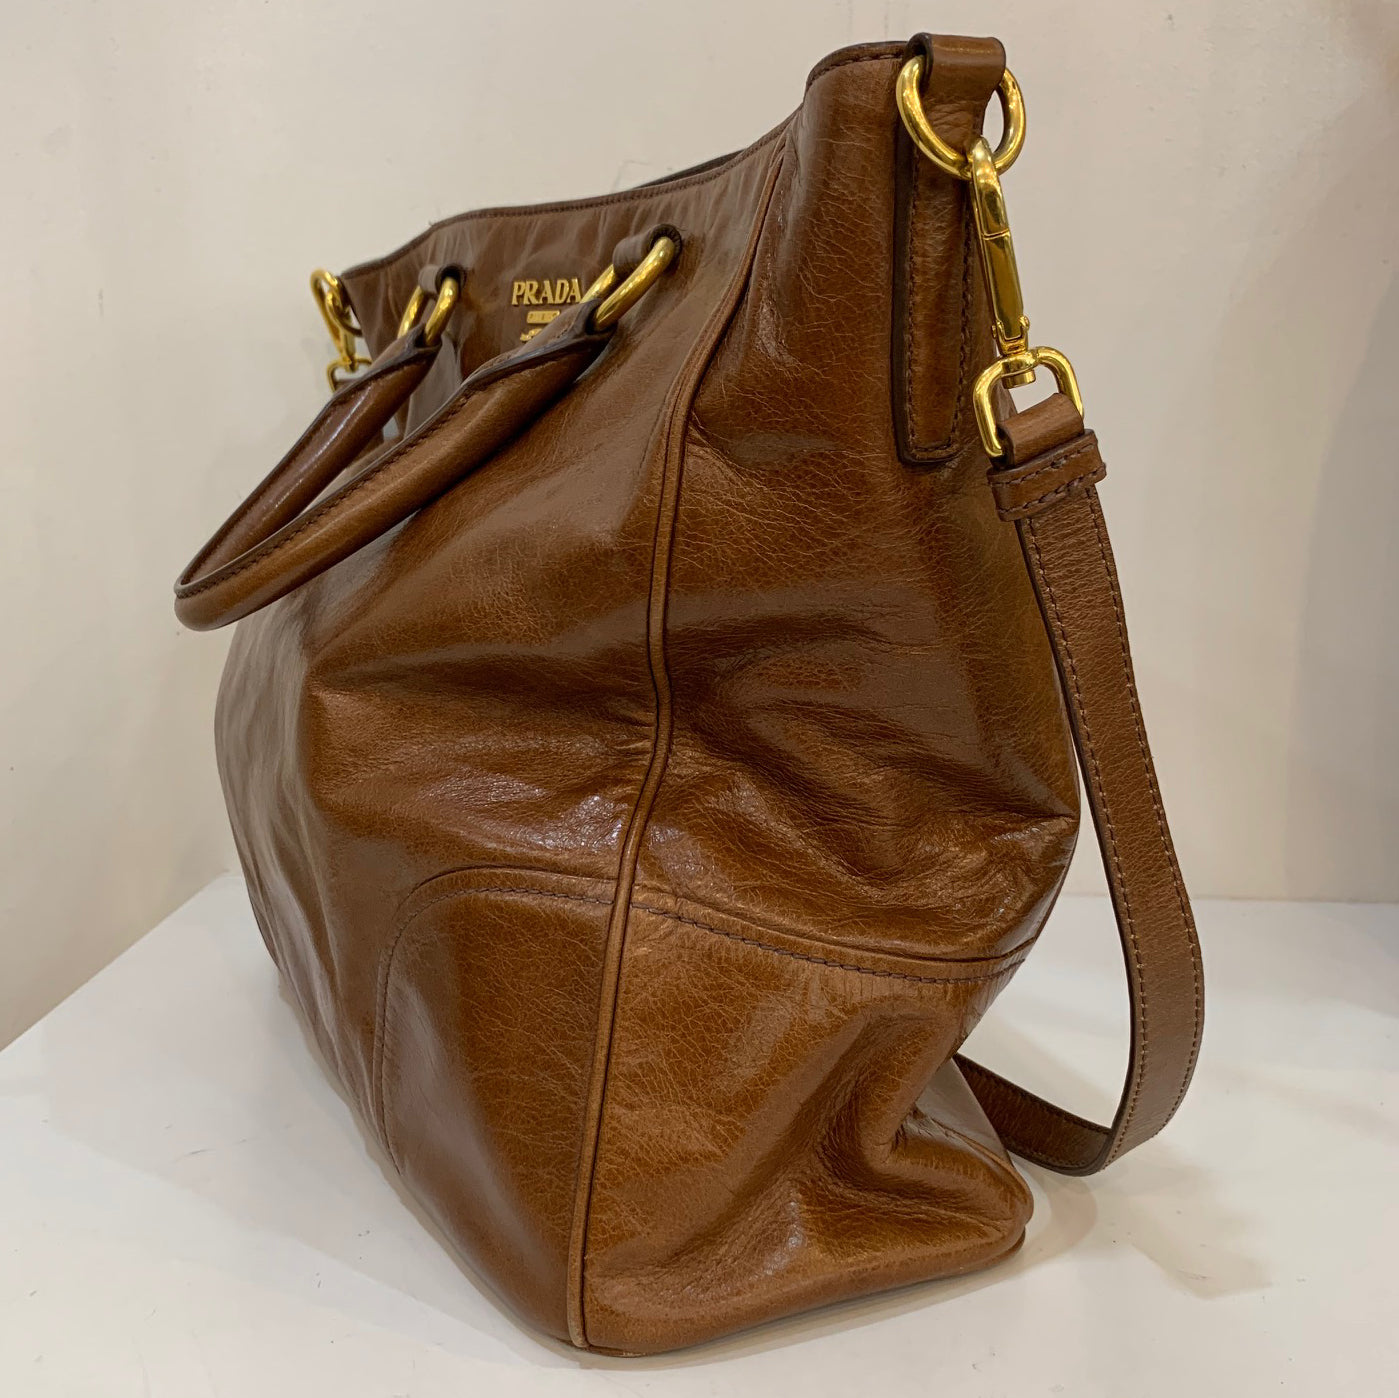 Prada Brown Leather Large Tote